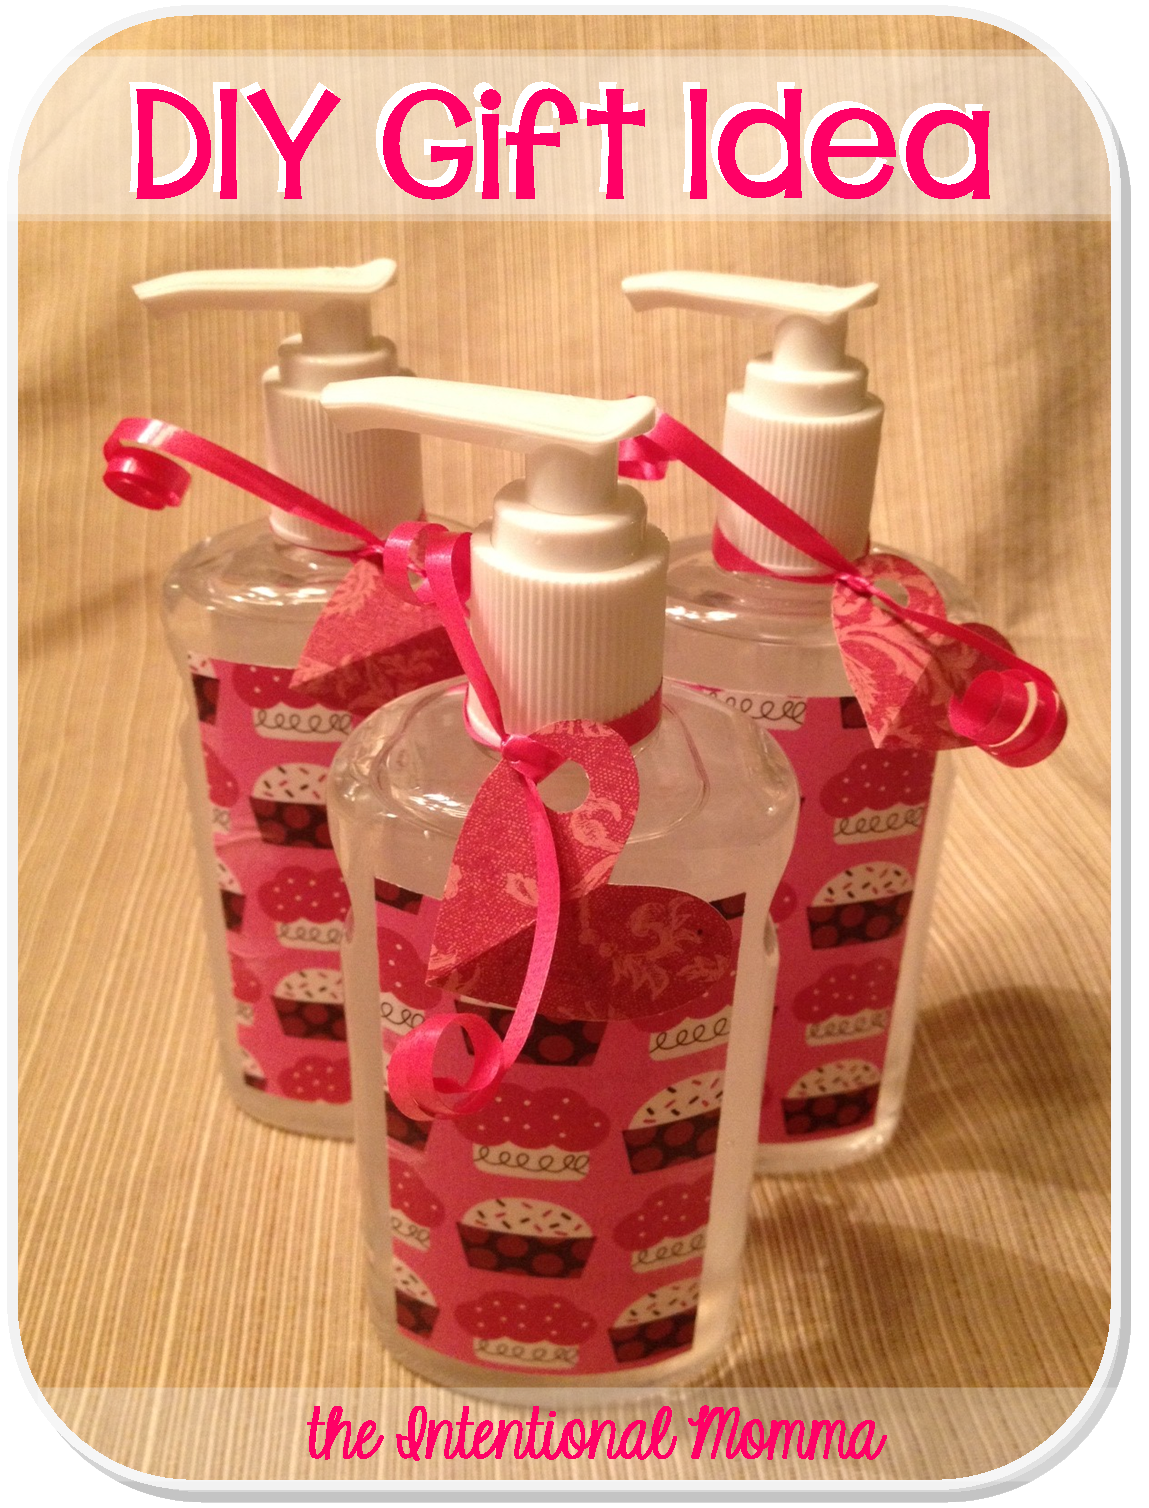 Diy gift idea hand sanitizer bottle scrapbook paper mod podge here is a simple and inexpensive gift idea that can be tailored to any occasion or holiday grab some hand sanitizer bottles mod podge scrapbook paper negle Images